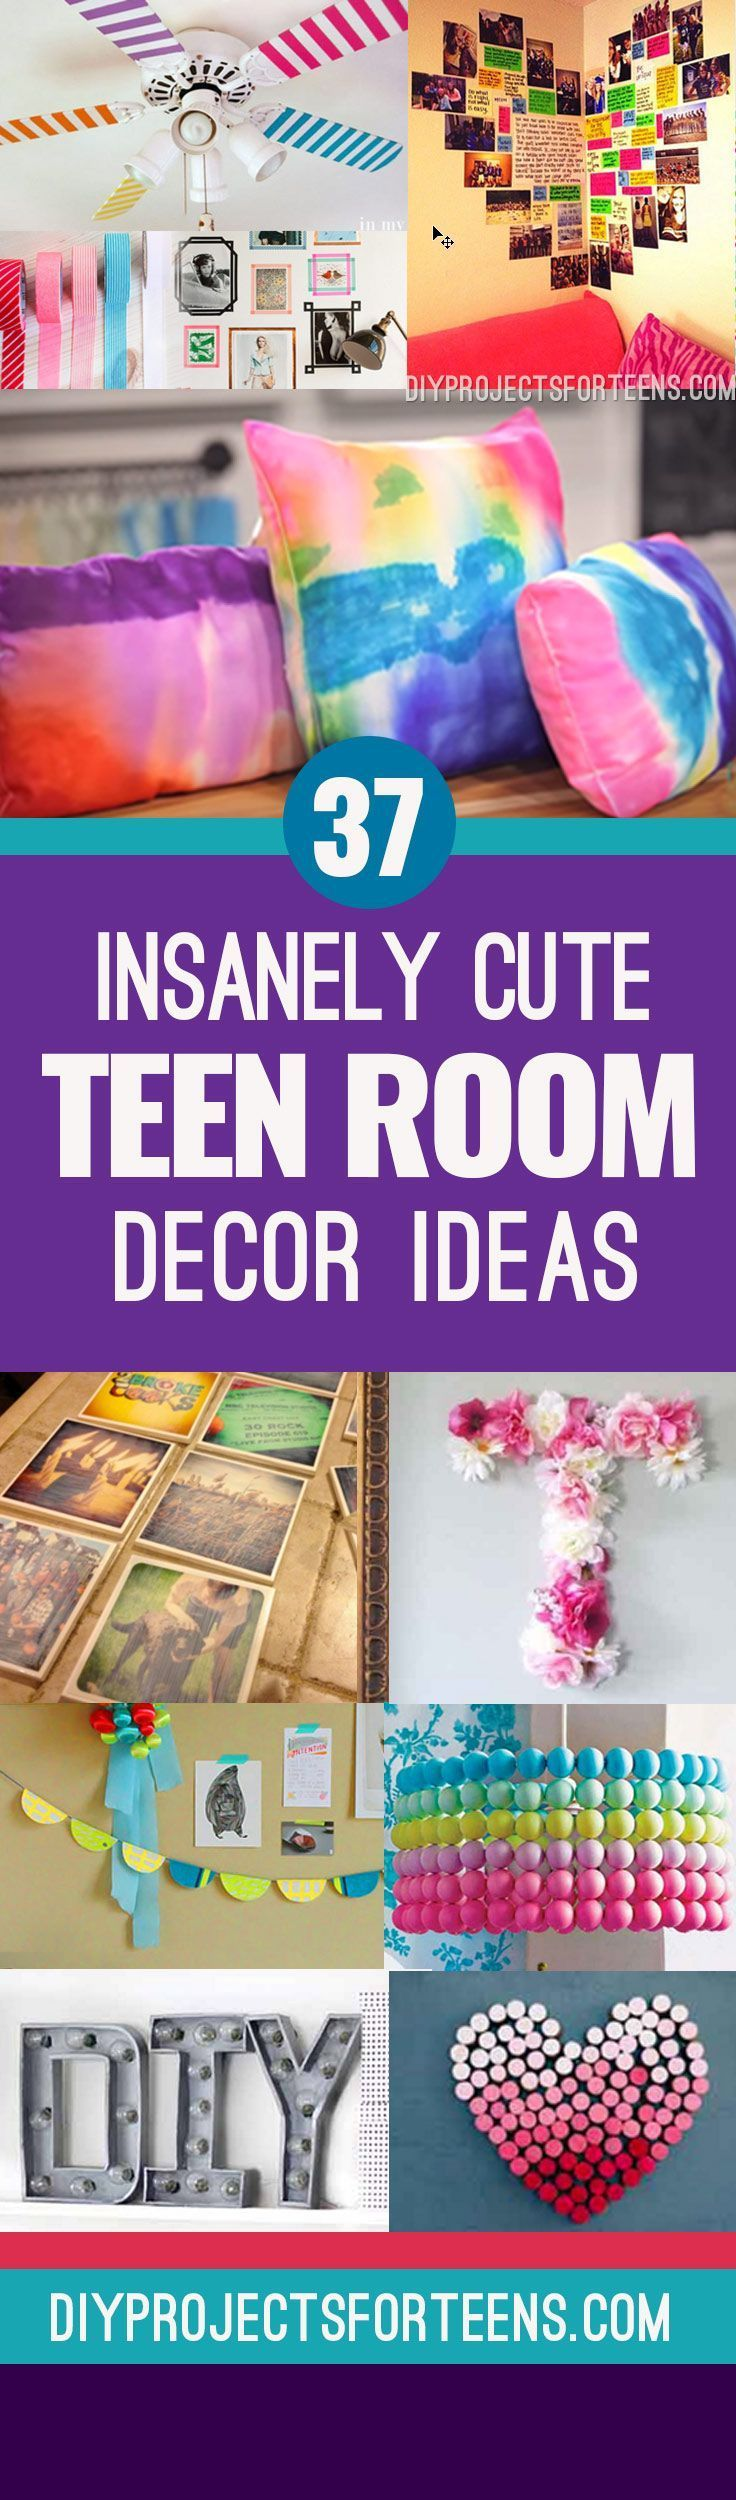 37 insanely cute teen bedroom ideas for diy decor girls for Cute room accessories